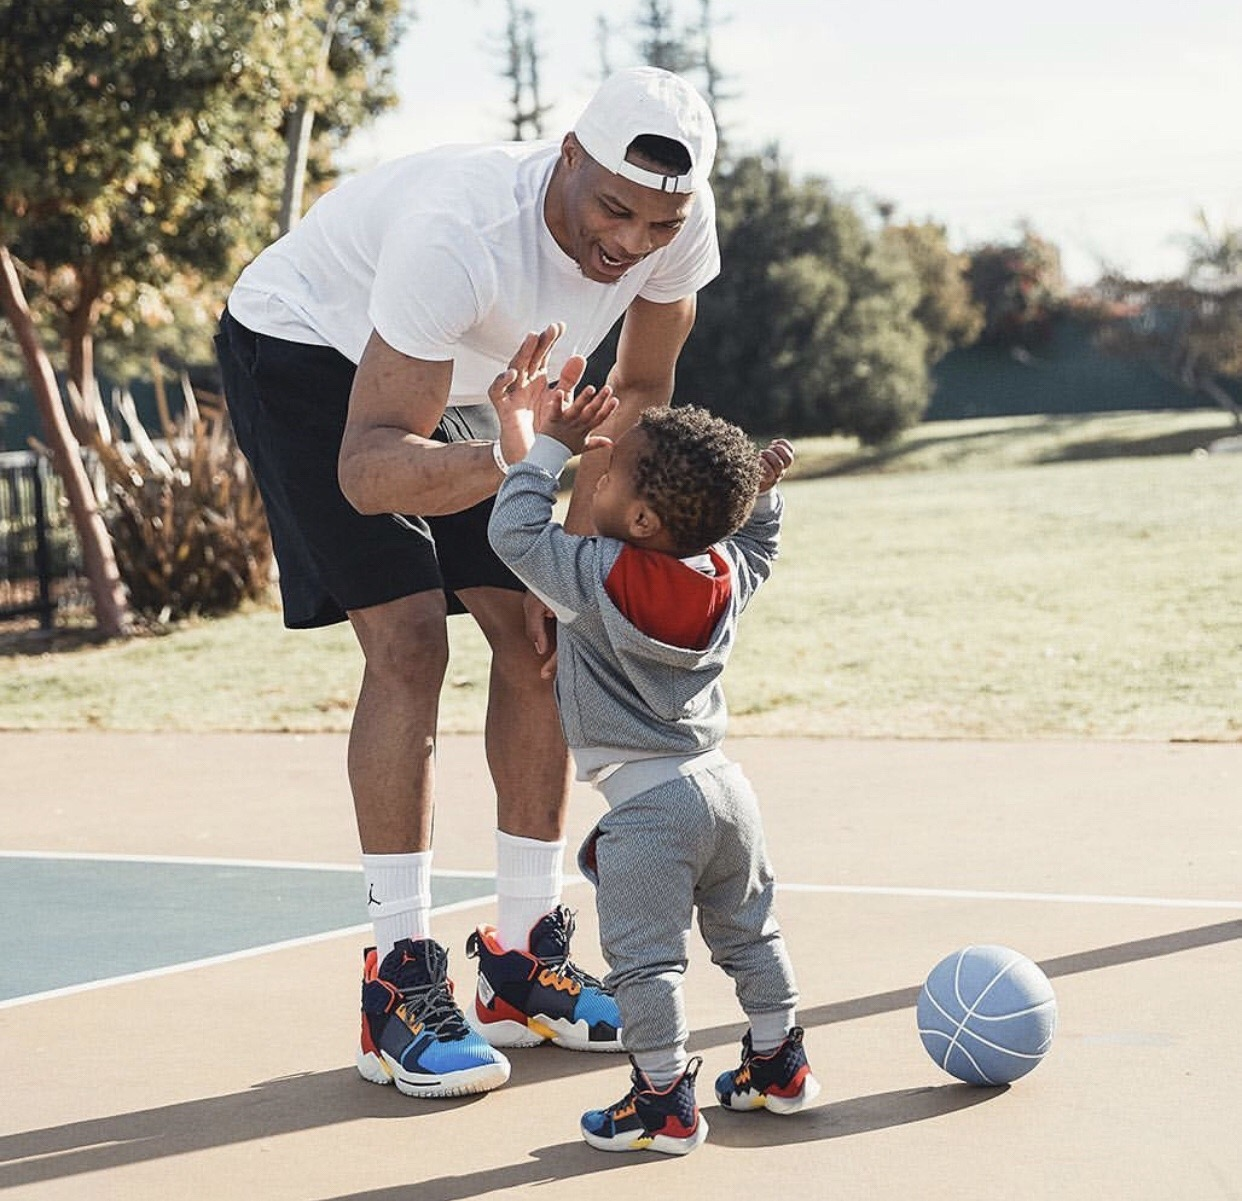 Russell and his son, Noah in the new Why Not 2.0 sneakers.